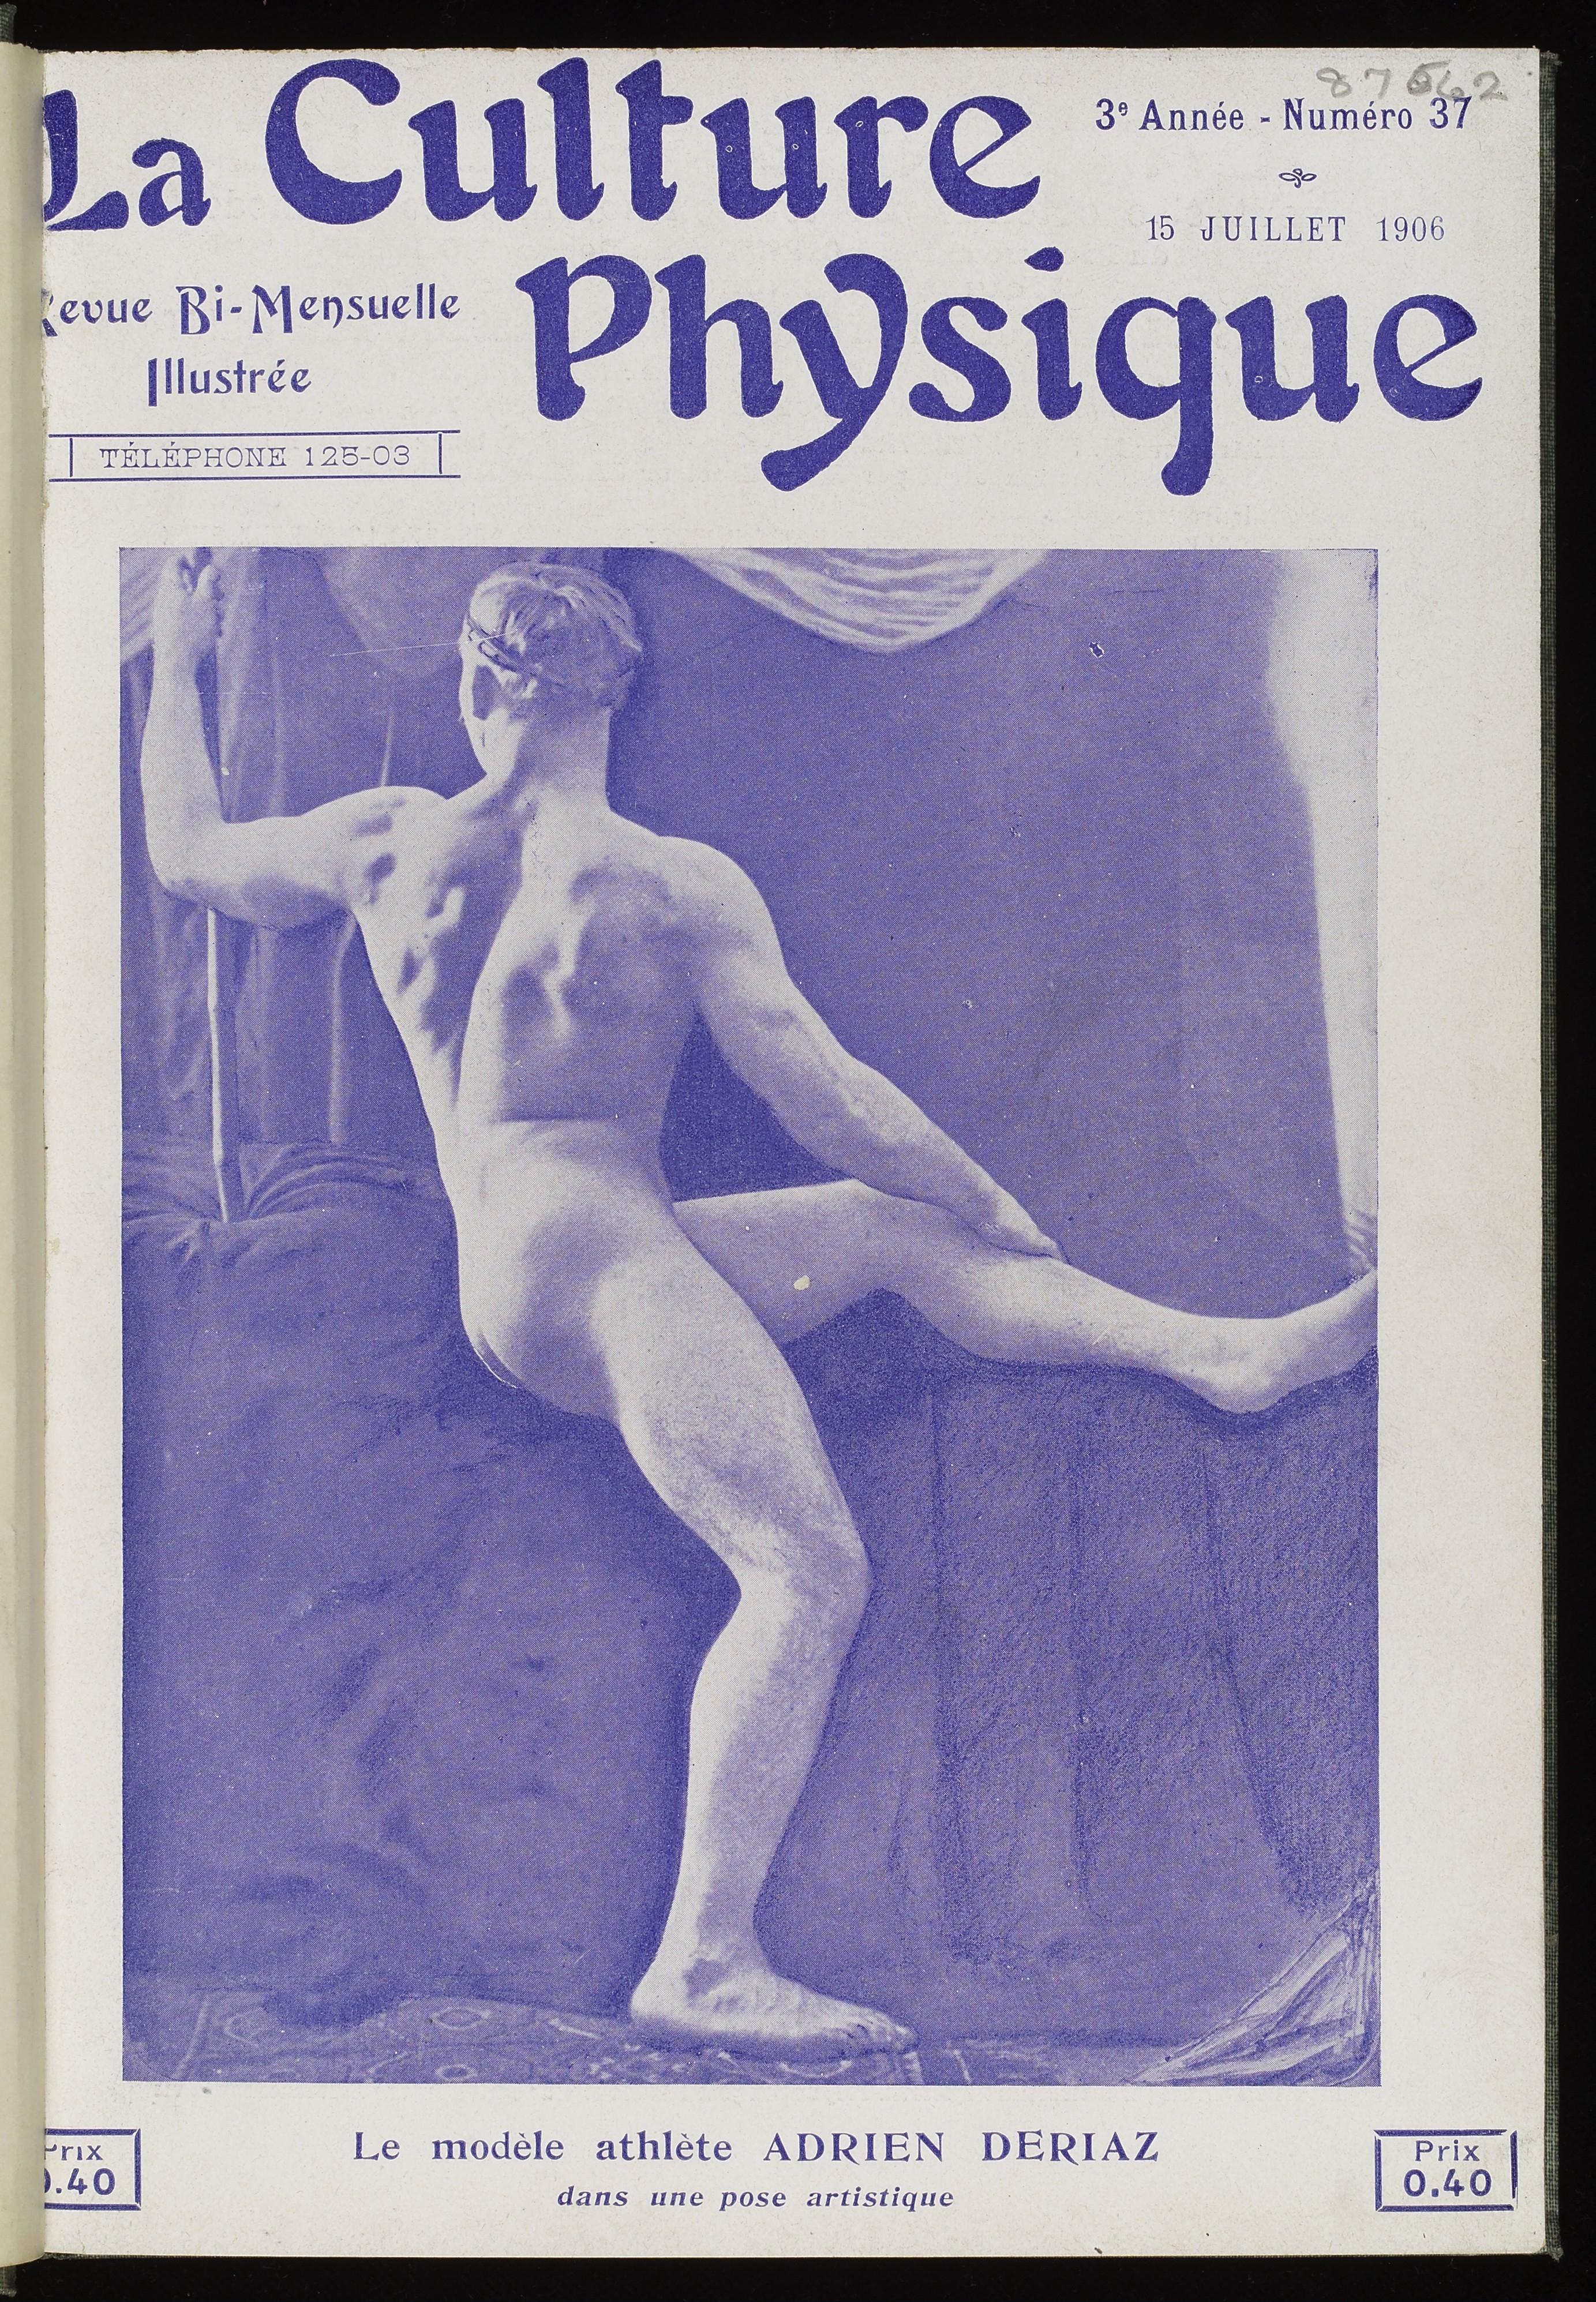 Male nude muscular physical exam gay 5